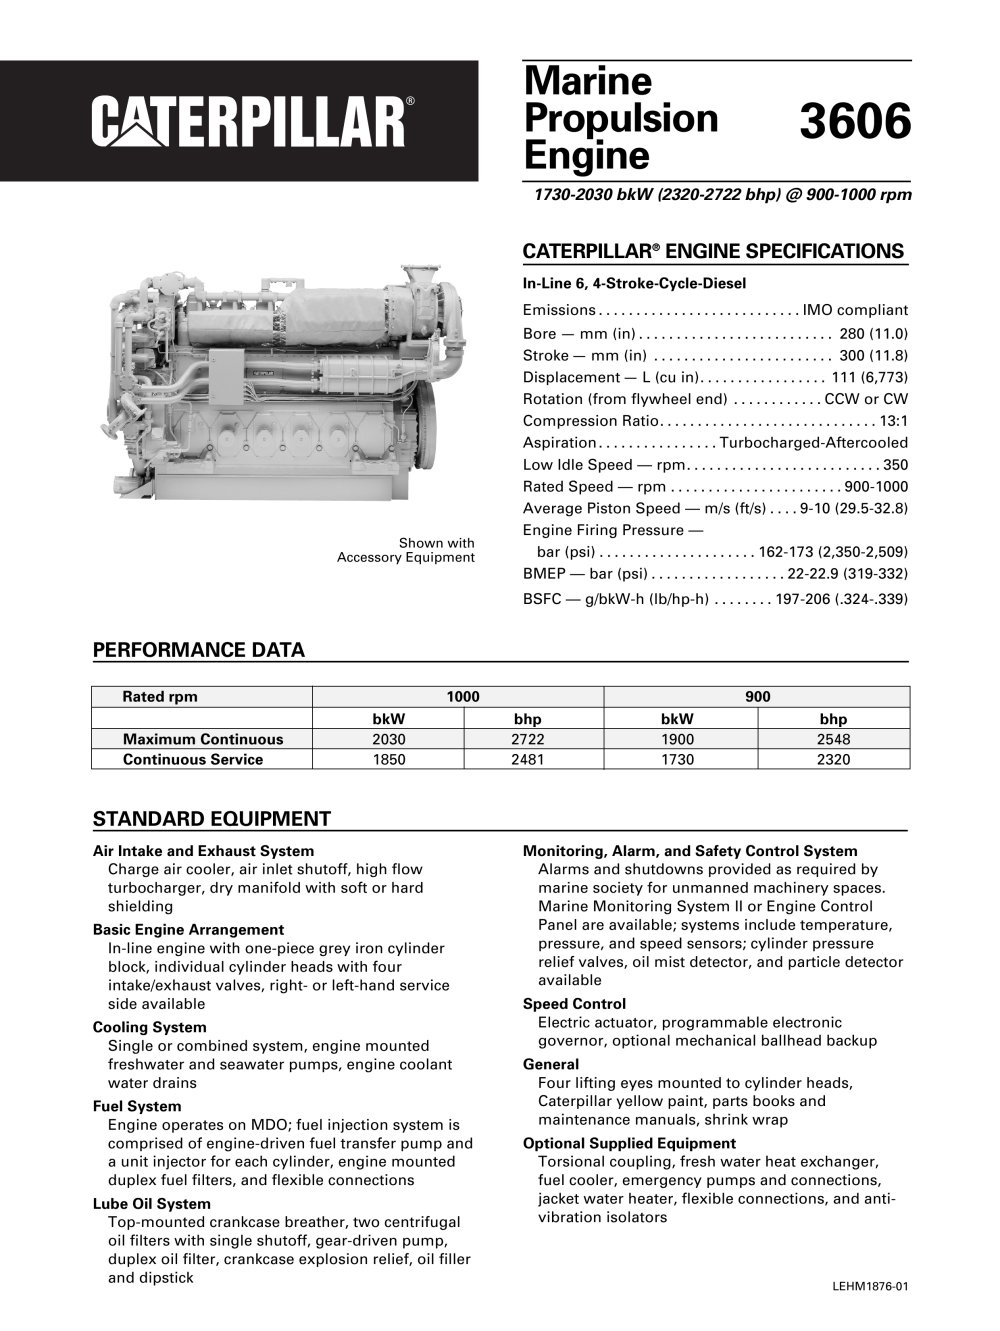 Cat 3606 Propulsion Spec Sheets - 1 / 2 Pages